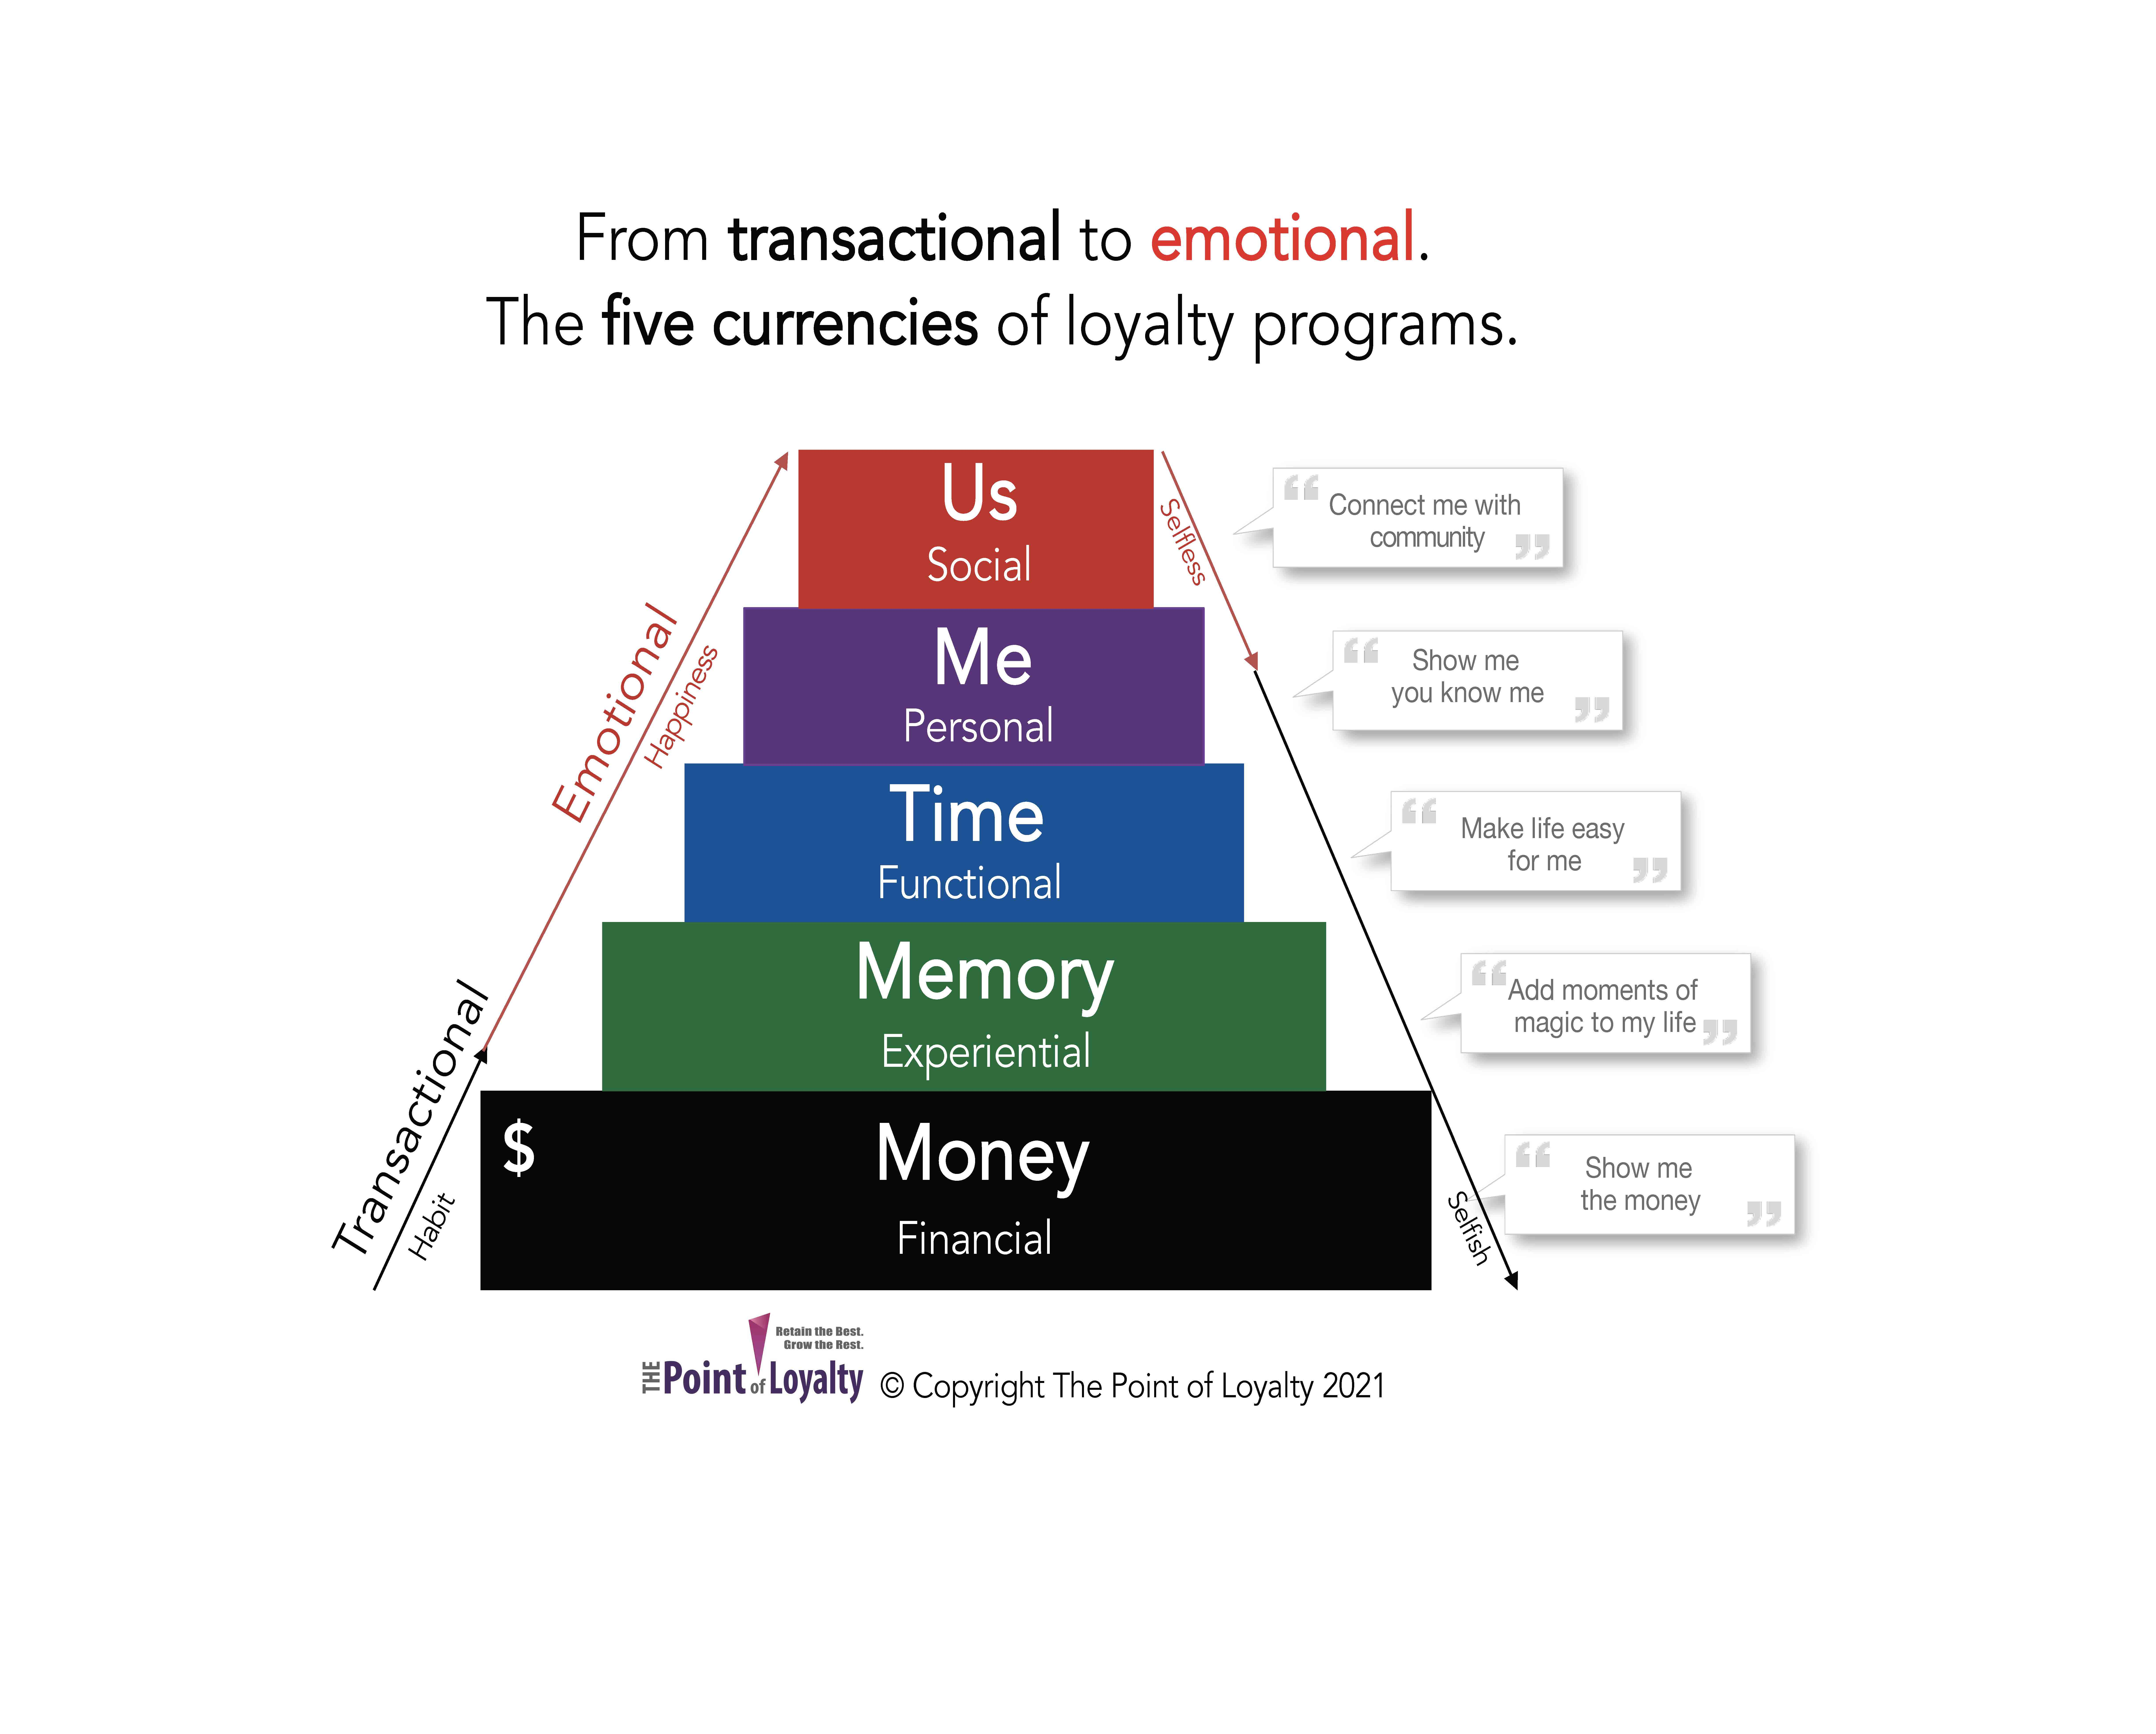 The five currencies of loyalty programs